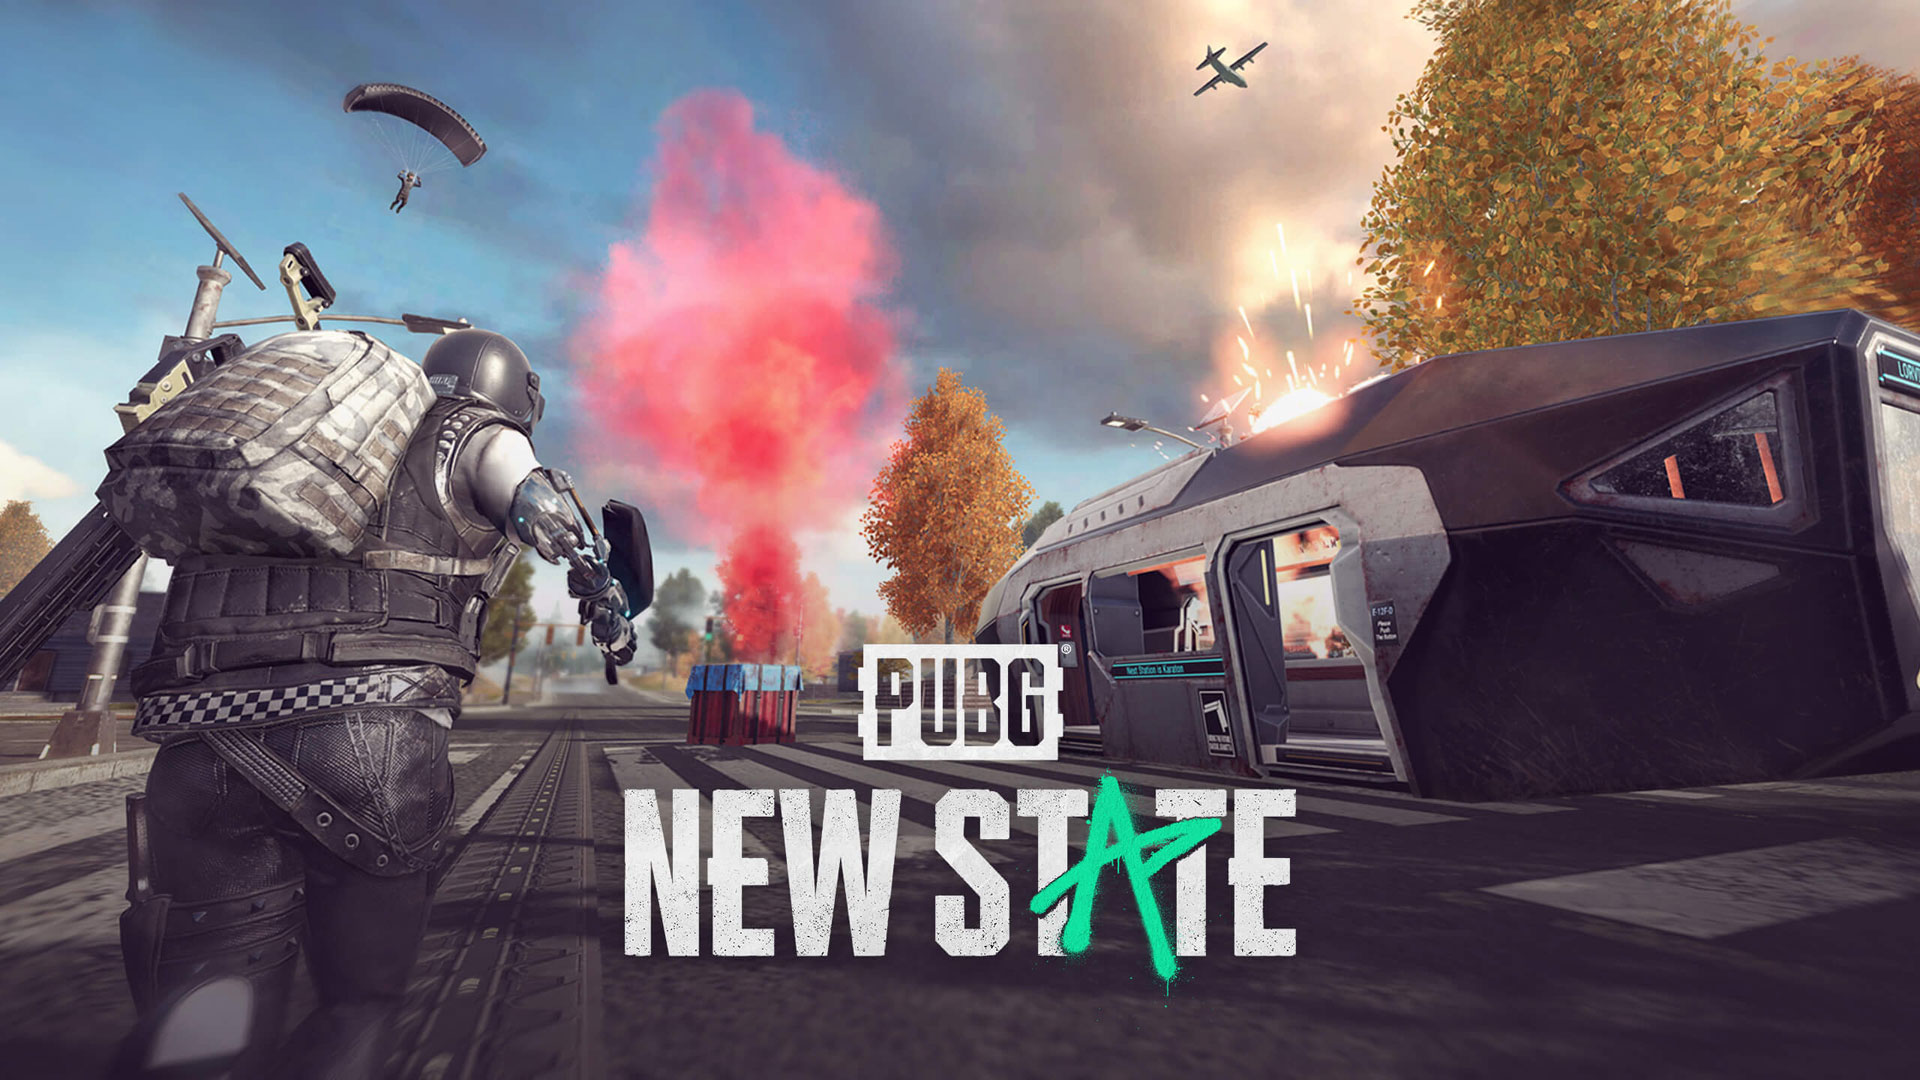 PUBG New State Wallpaper in 1920x1080 1920x1080